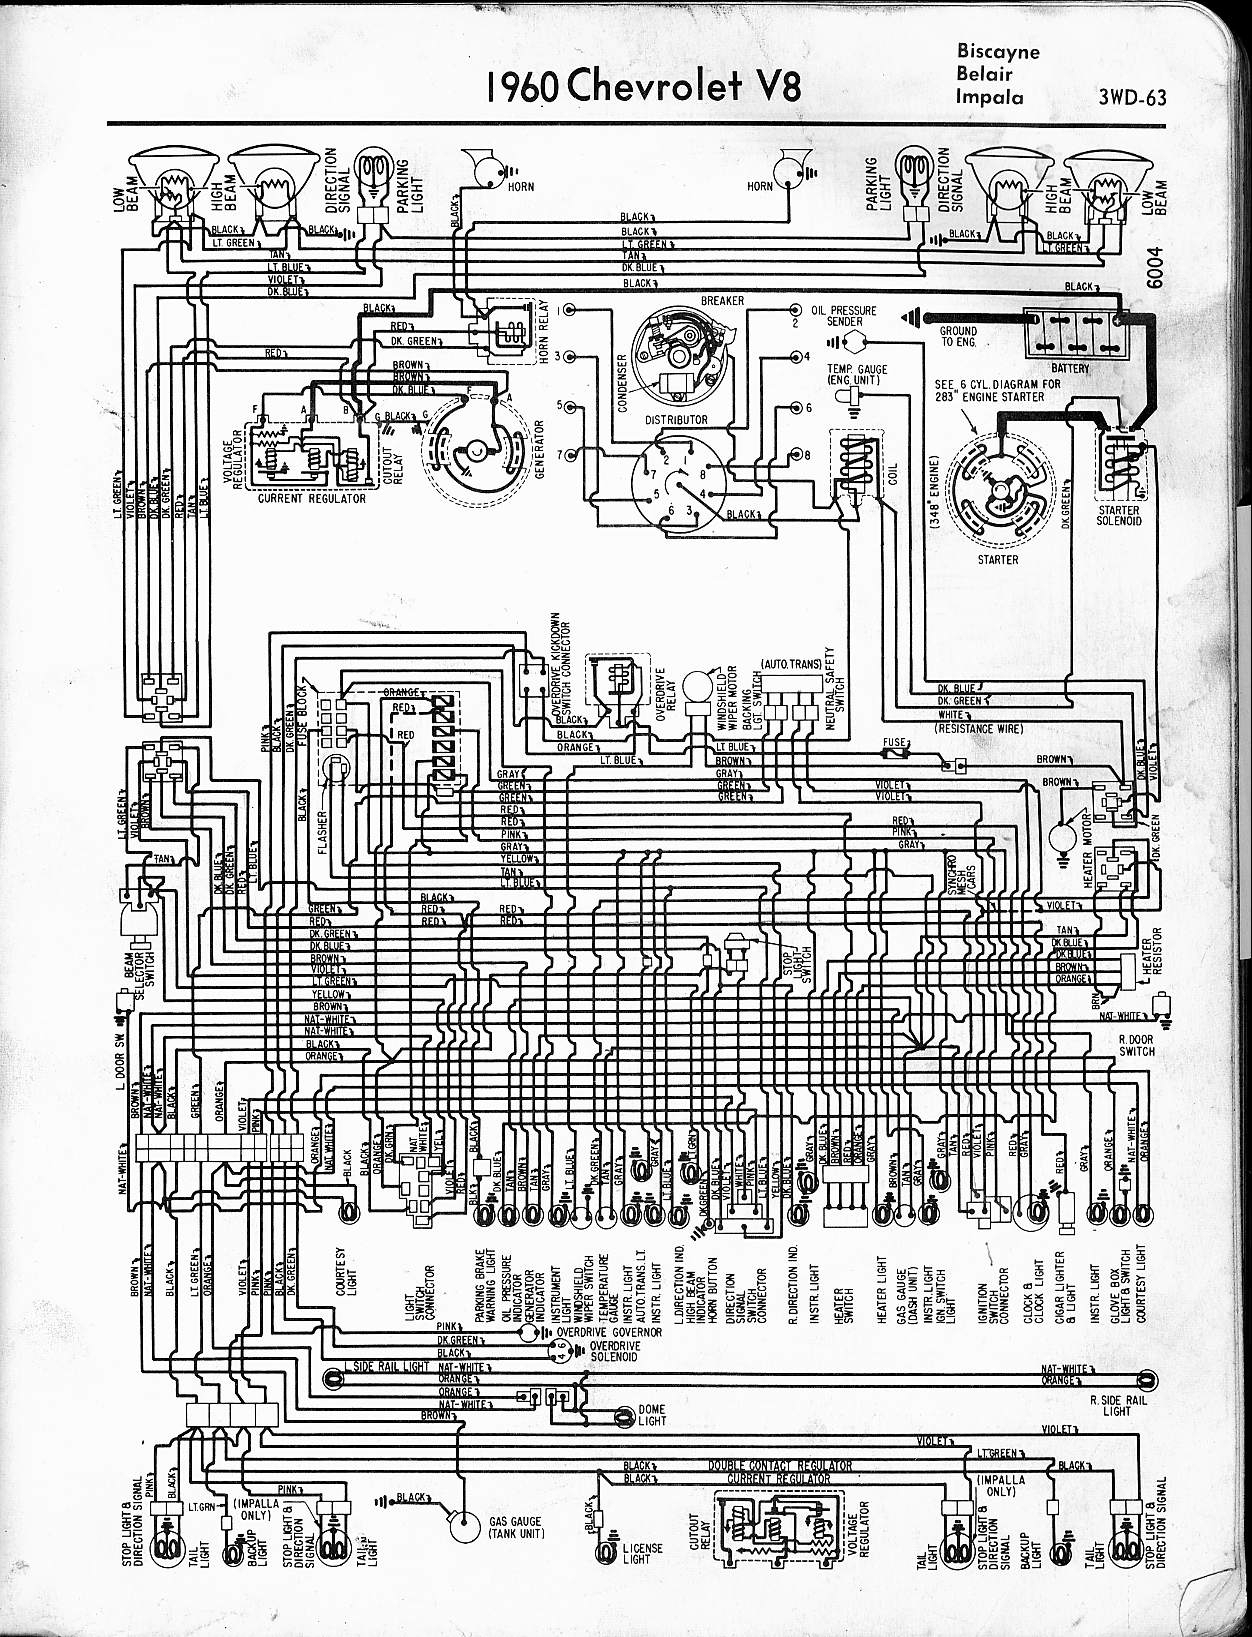 DIAGRAM] 2011 Chevy Impala Wiring Diagram FULL Version HD Quality Wiring  Diagram - RITUALDIAGRAMS.DOMENICANIPISTOIA.IT | 2005 Impala Headlight Wiring Diagram |  | ritualdiagrams.domenicanipistoia.it